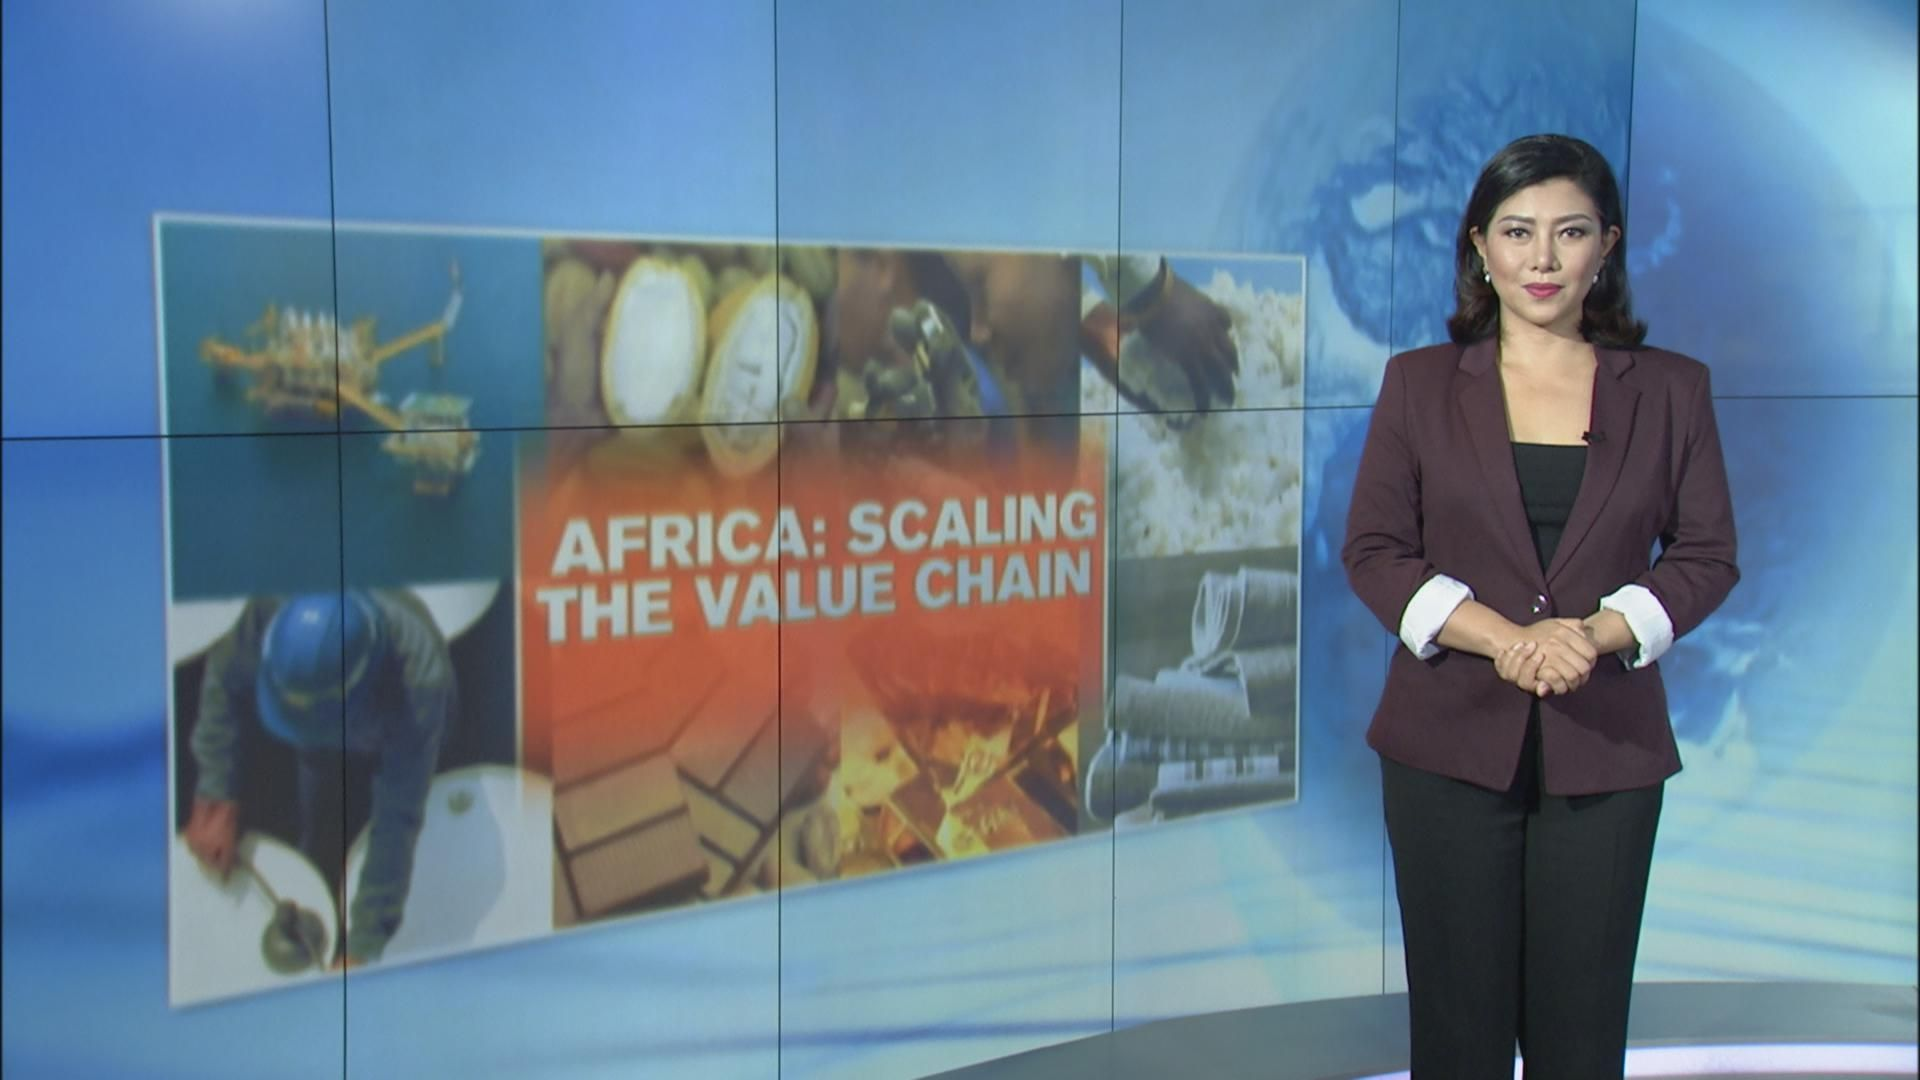 Talk Africa: Africa scaling the value chain